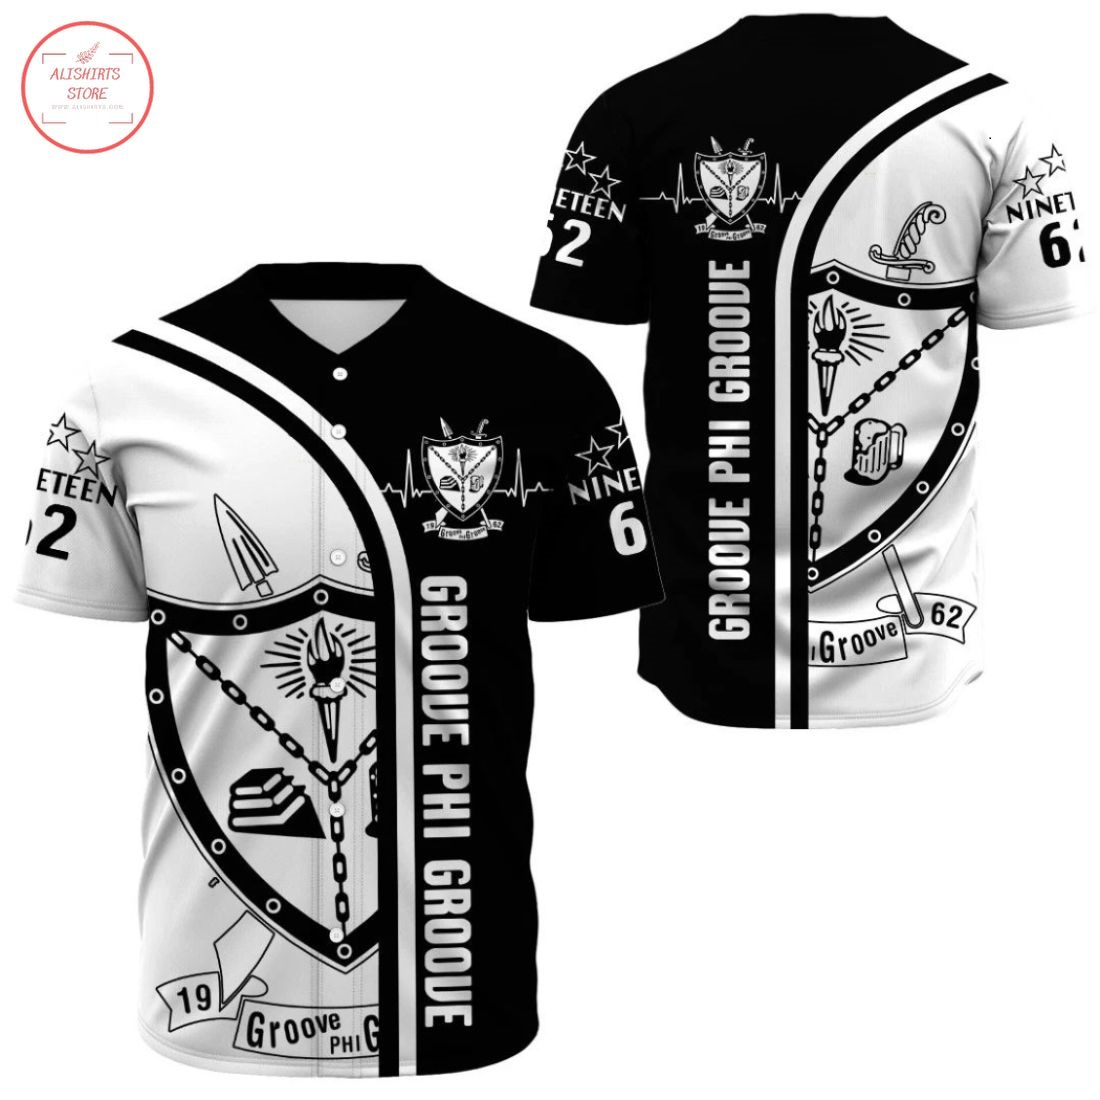 Groove Phi Groove Fraternity 1962 Baseball Jersey